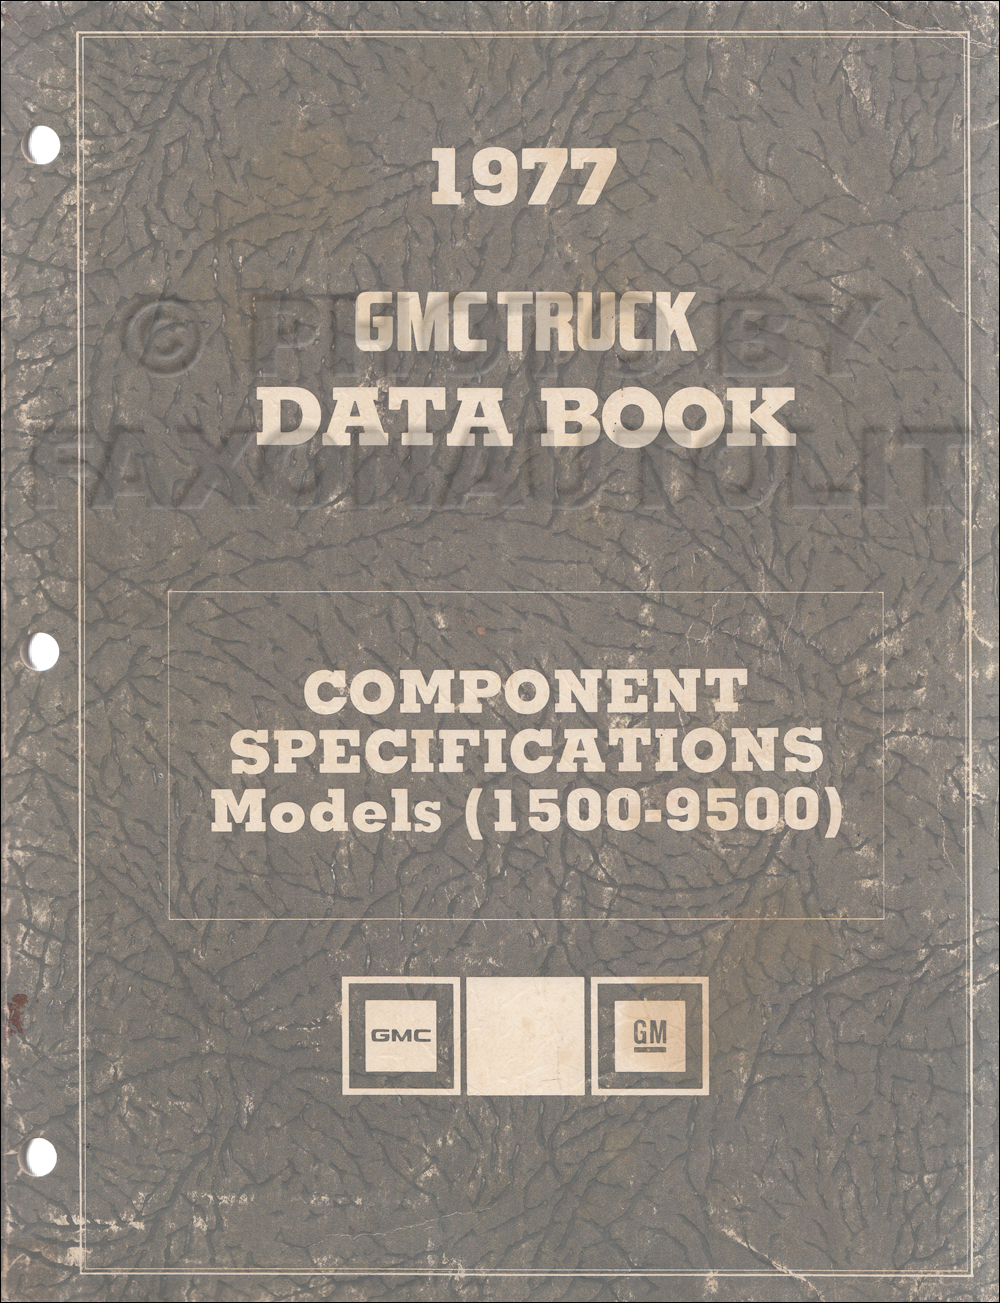 1977 GMC 1500-3500 Repair Shop Manuals on CD-ROM $30.00. More Info · 1977  GMC Component Specifications Data Book Original REVISED